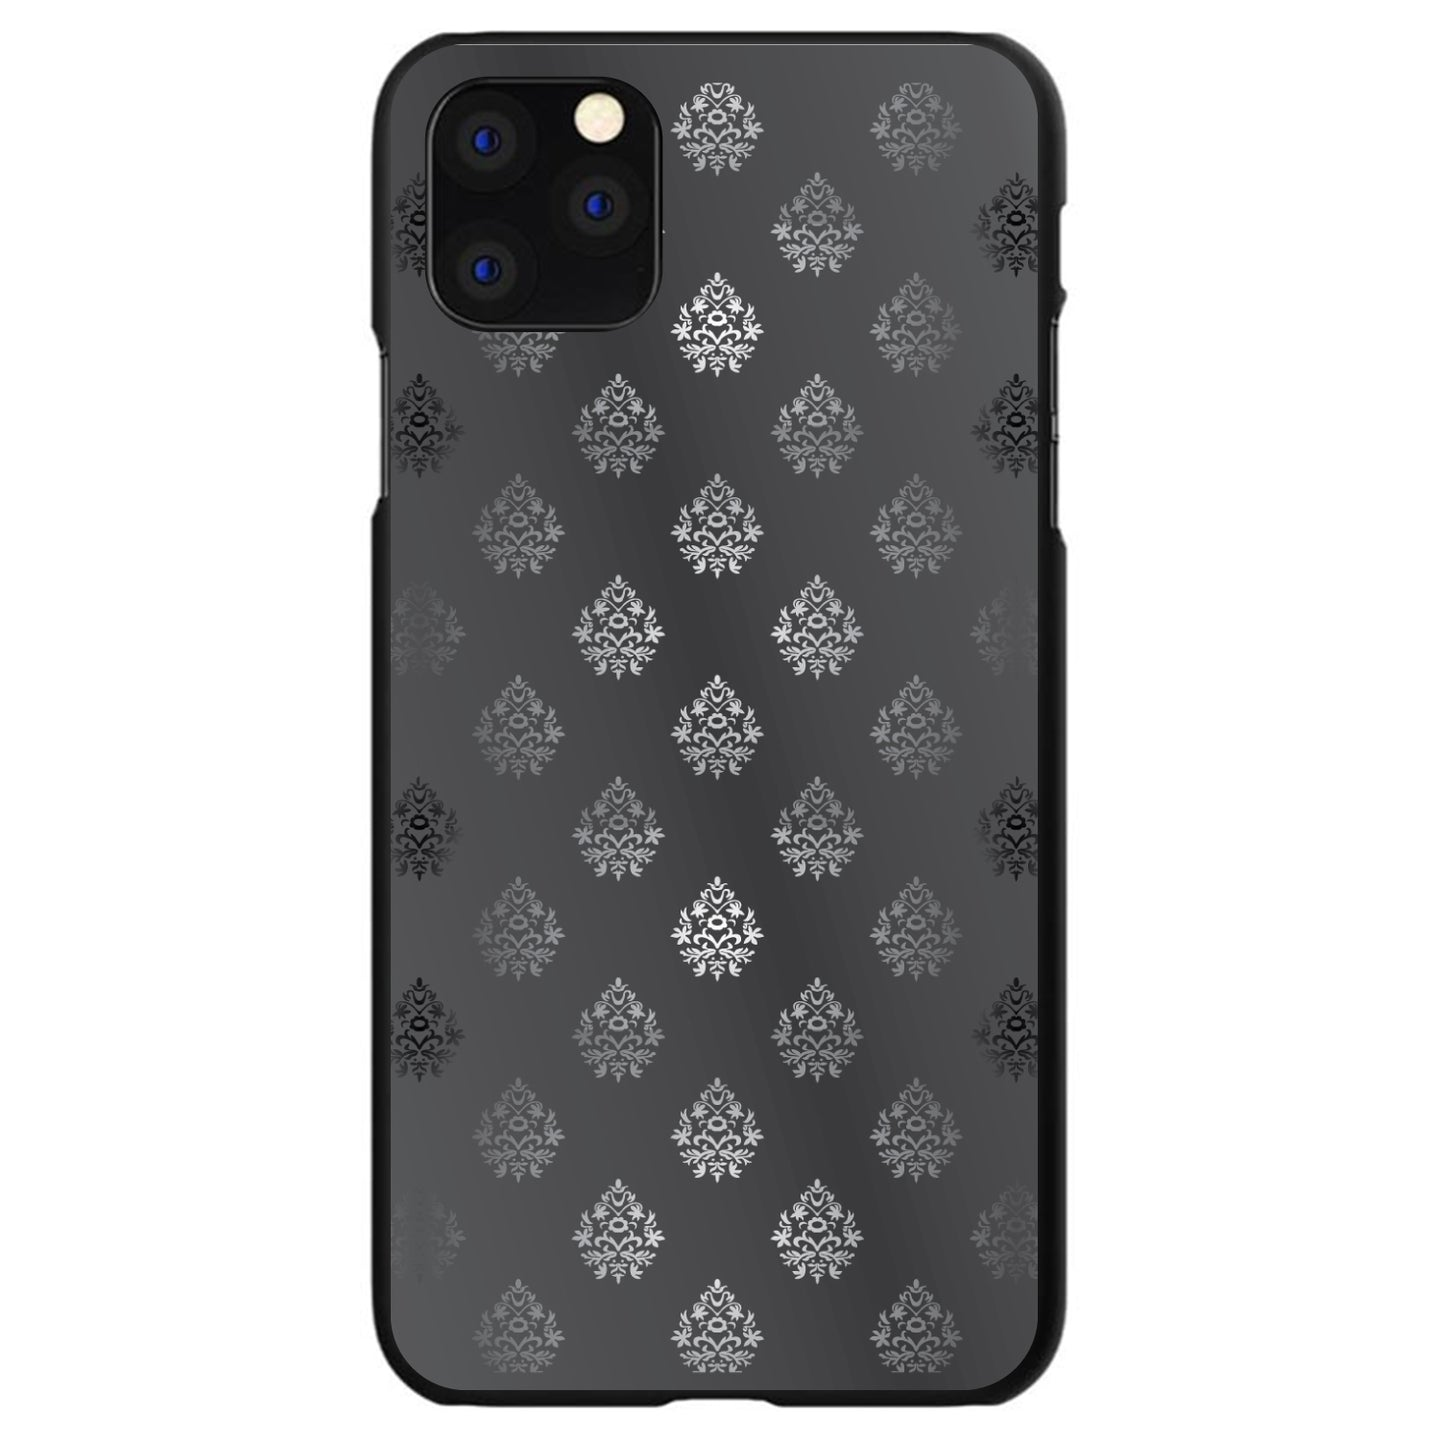 DistinctInk® Hard Plastic Snap-On Case for Apple iPhone - Silver Grey Black White Damask